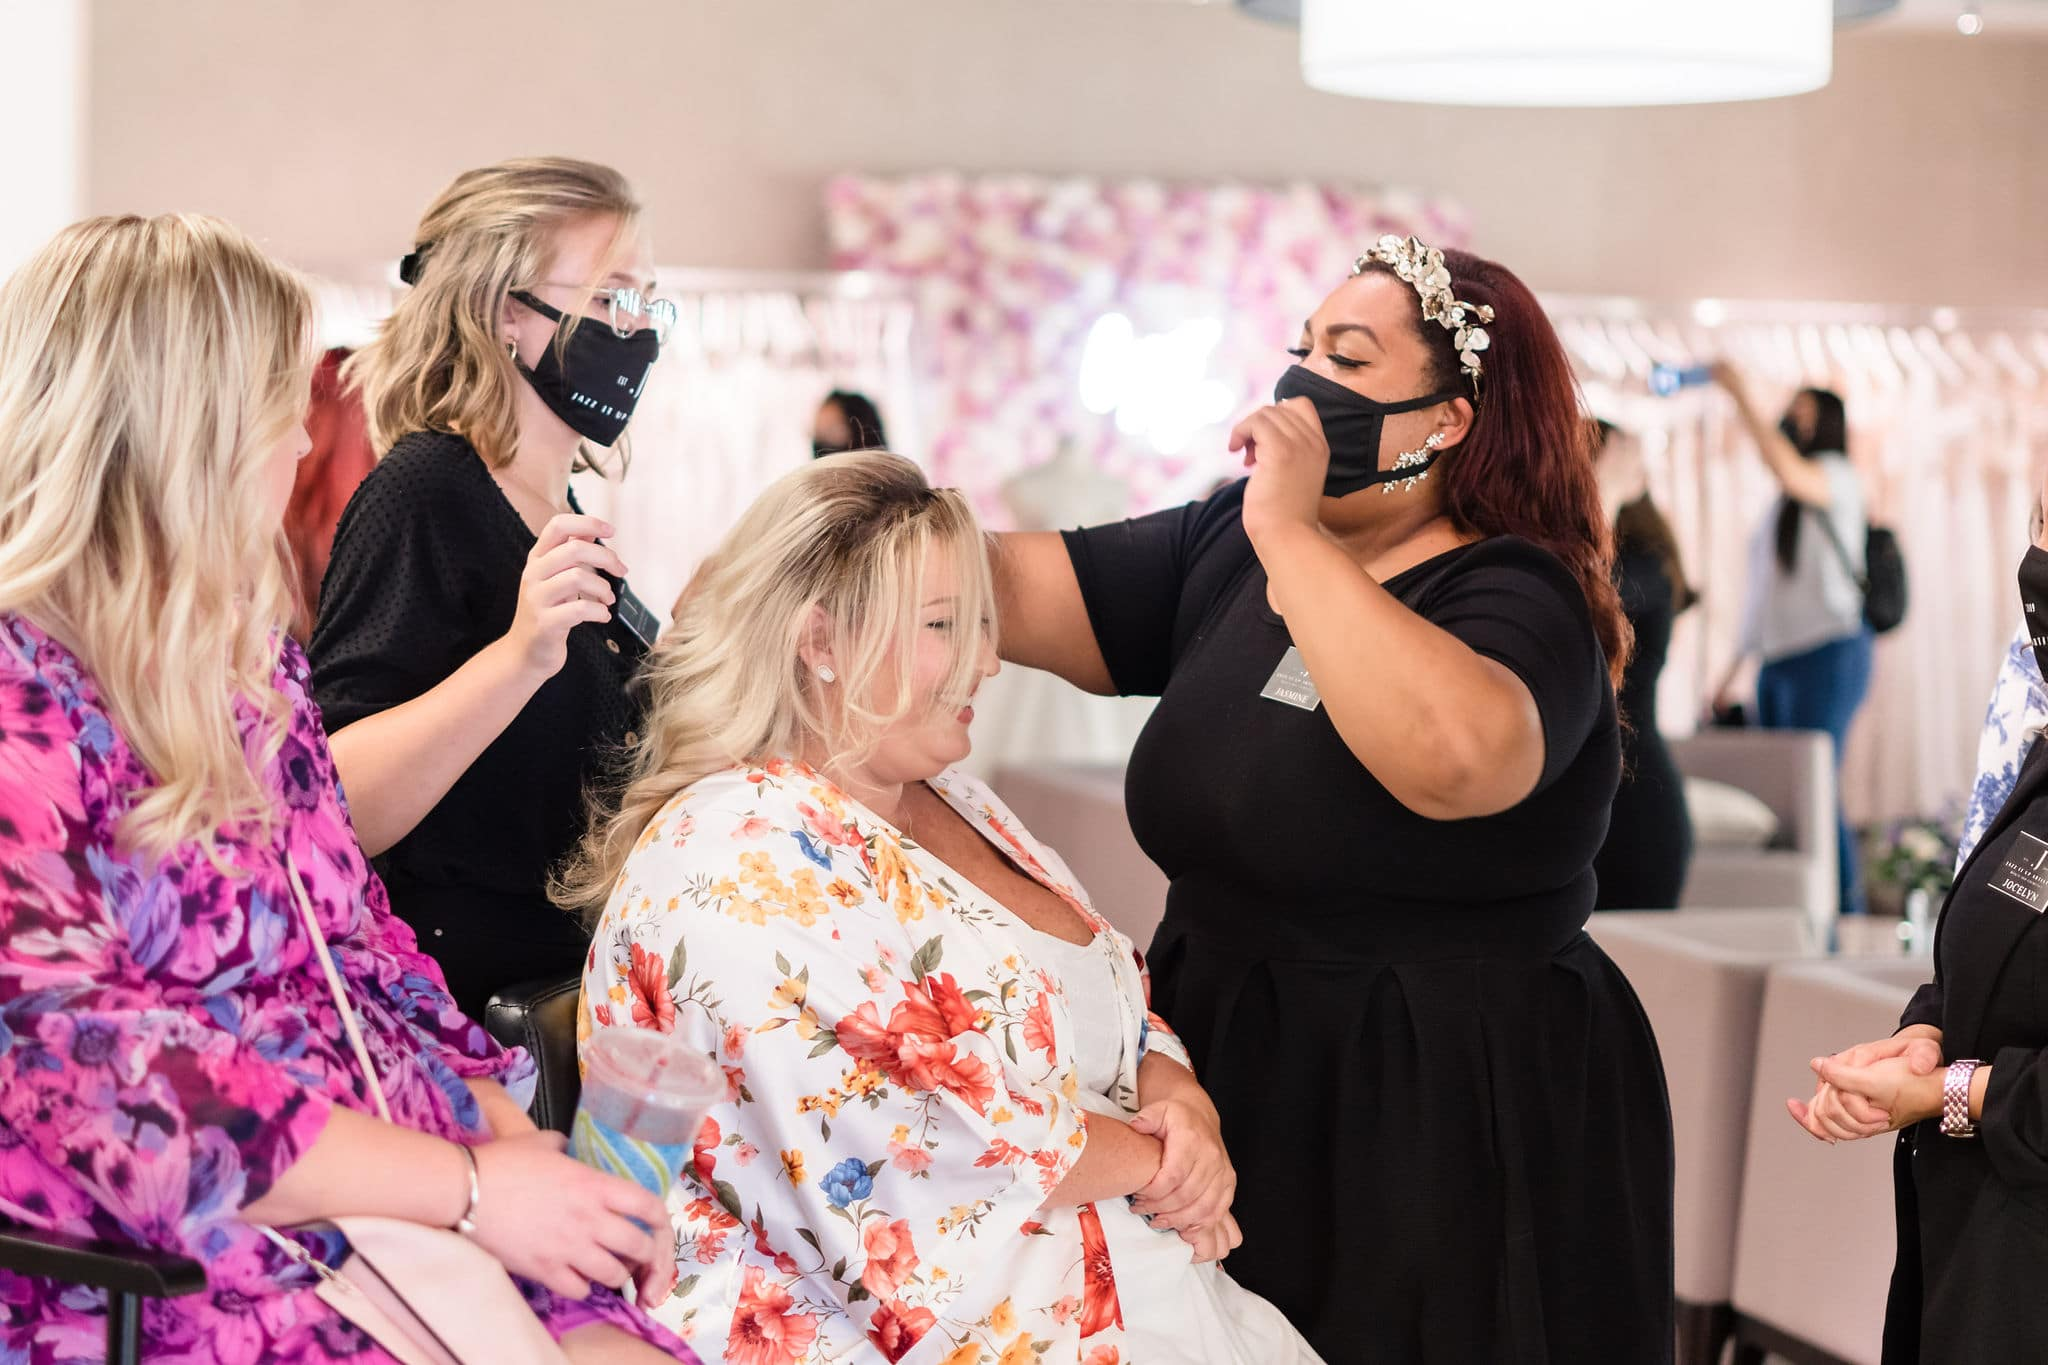 hair and makeup glam services for bride to be